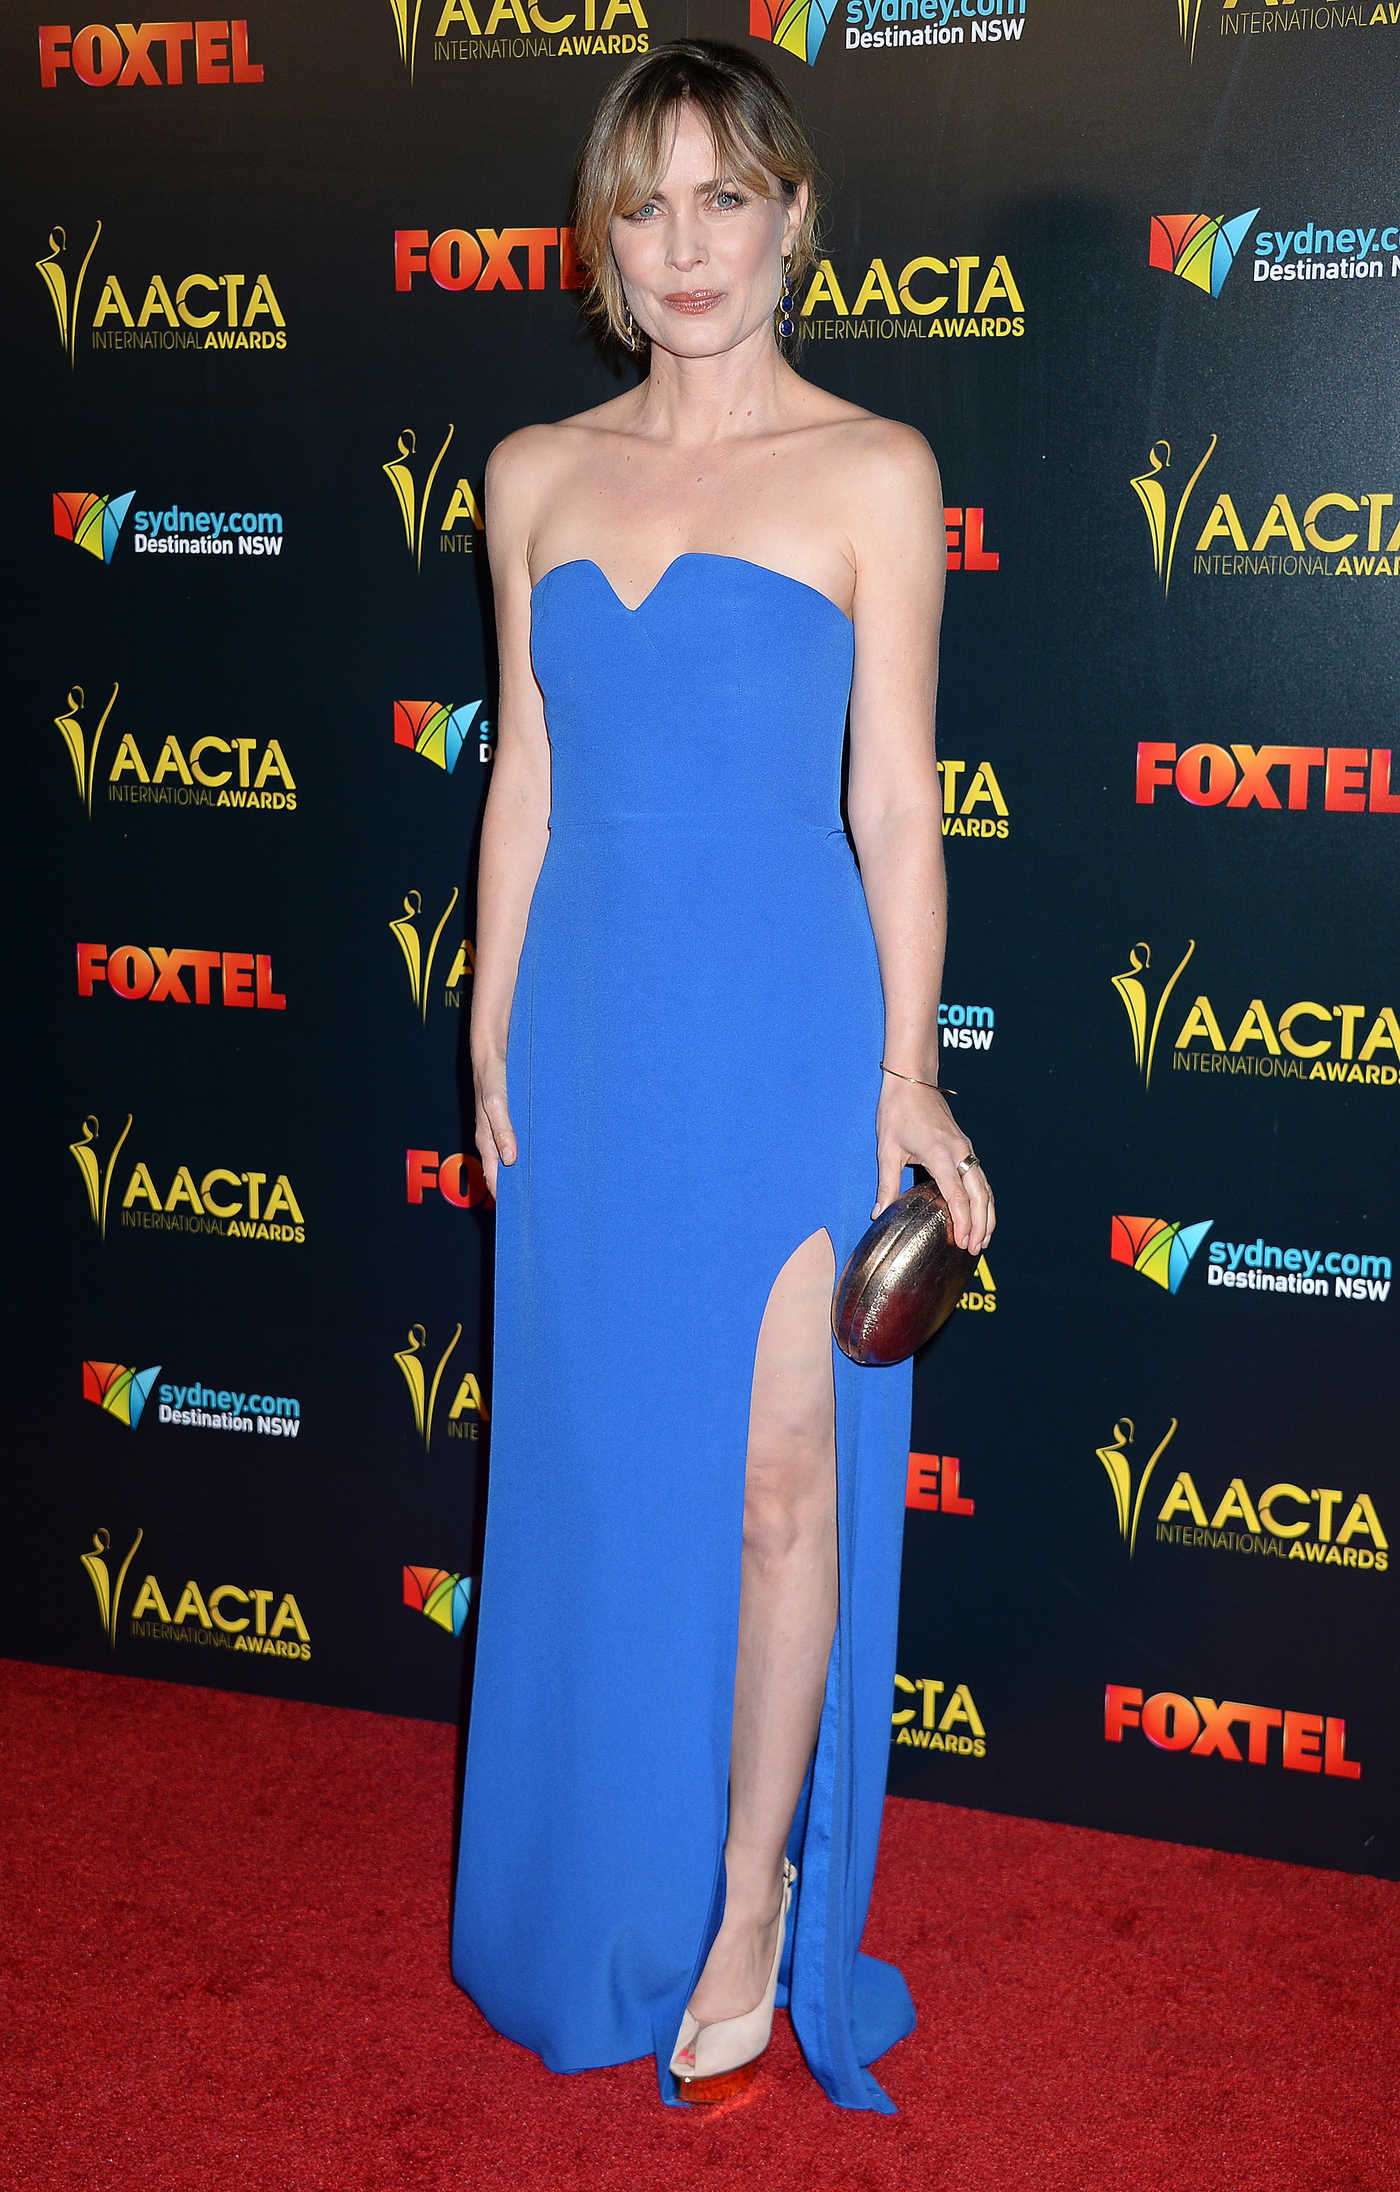 Radha Mitchell at the 6th AACTA International Awards in Los Angeles 01/06/2017